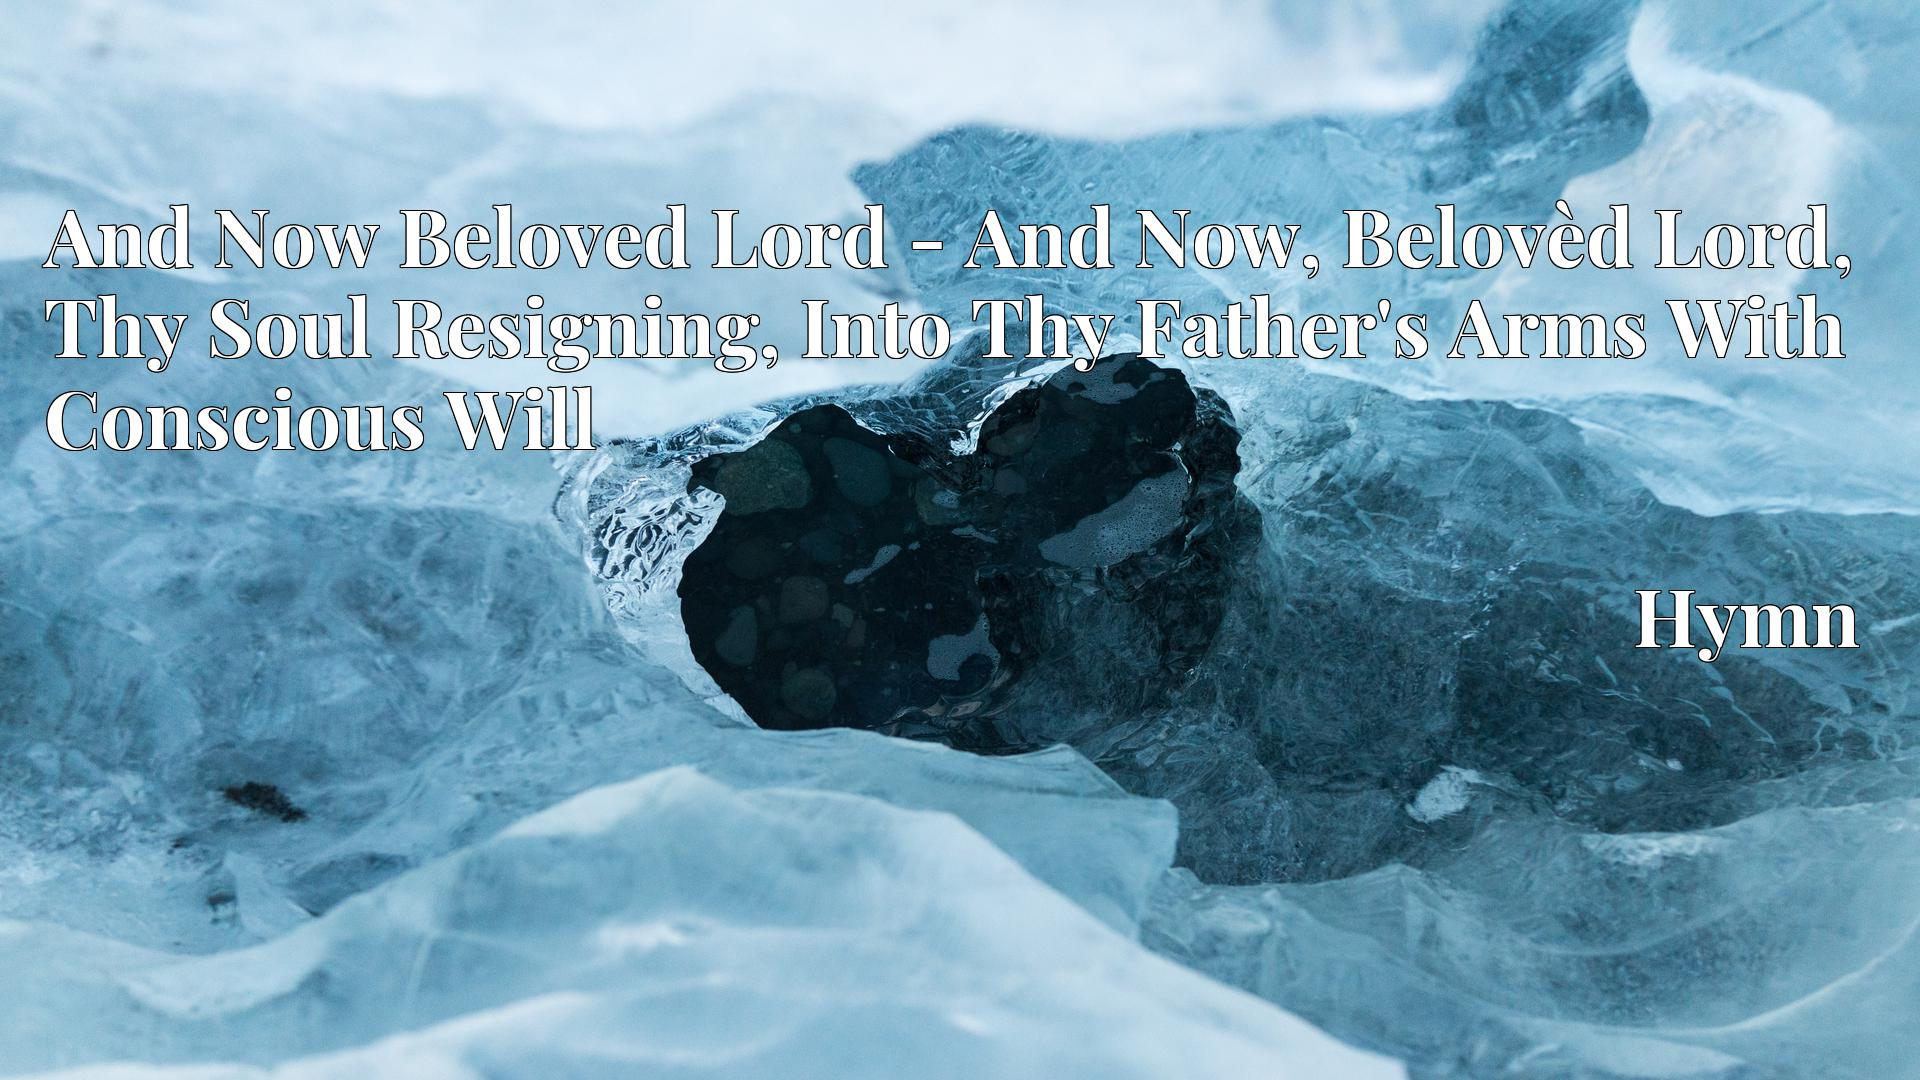 And Now Beloved Lord - And Now, Belovèd Lord, Thy Soul Resigning, Into Thy Father's Arms With Conscious Will Hymn